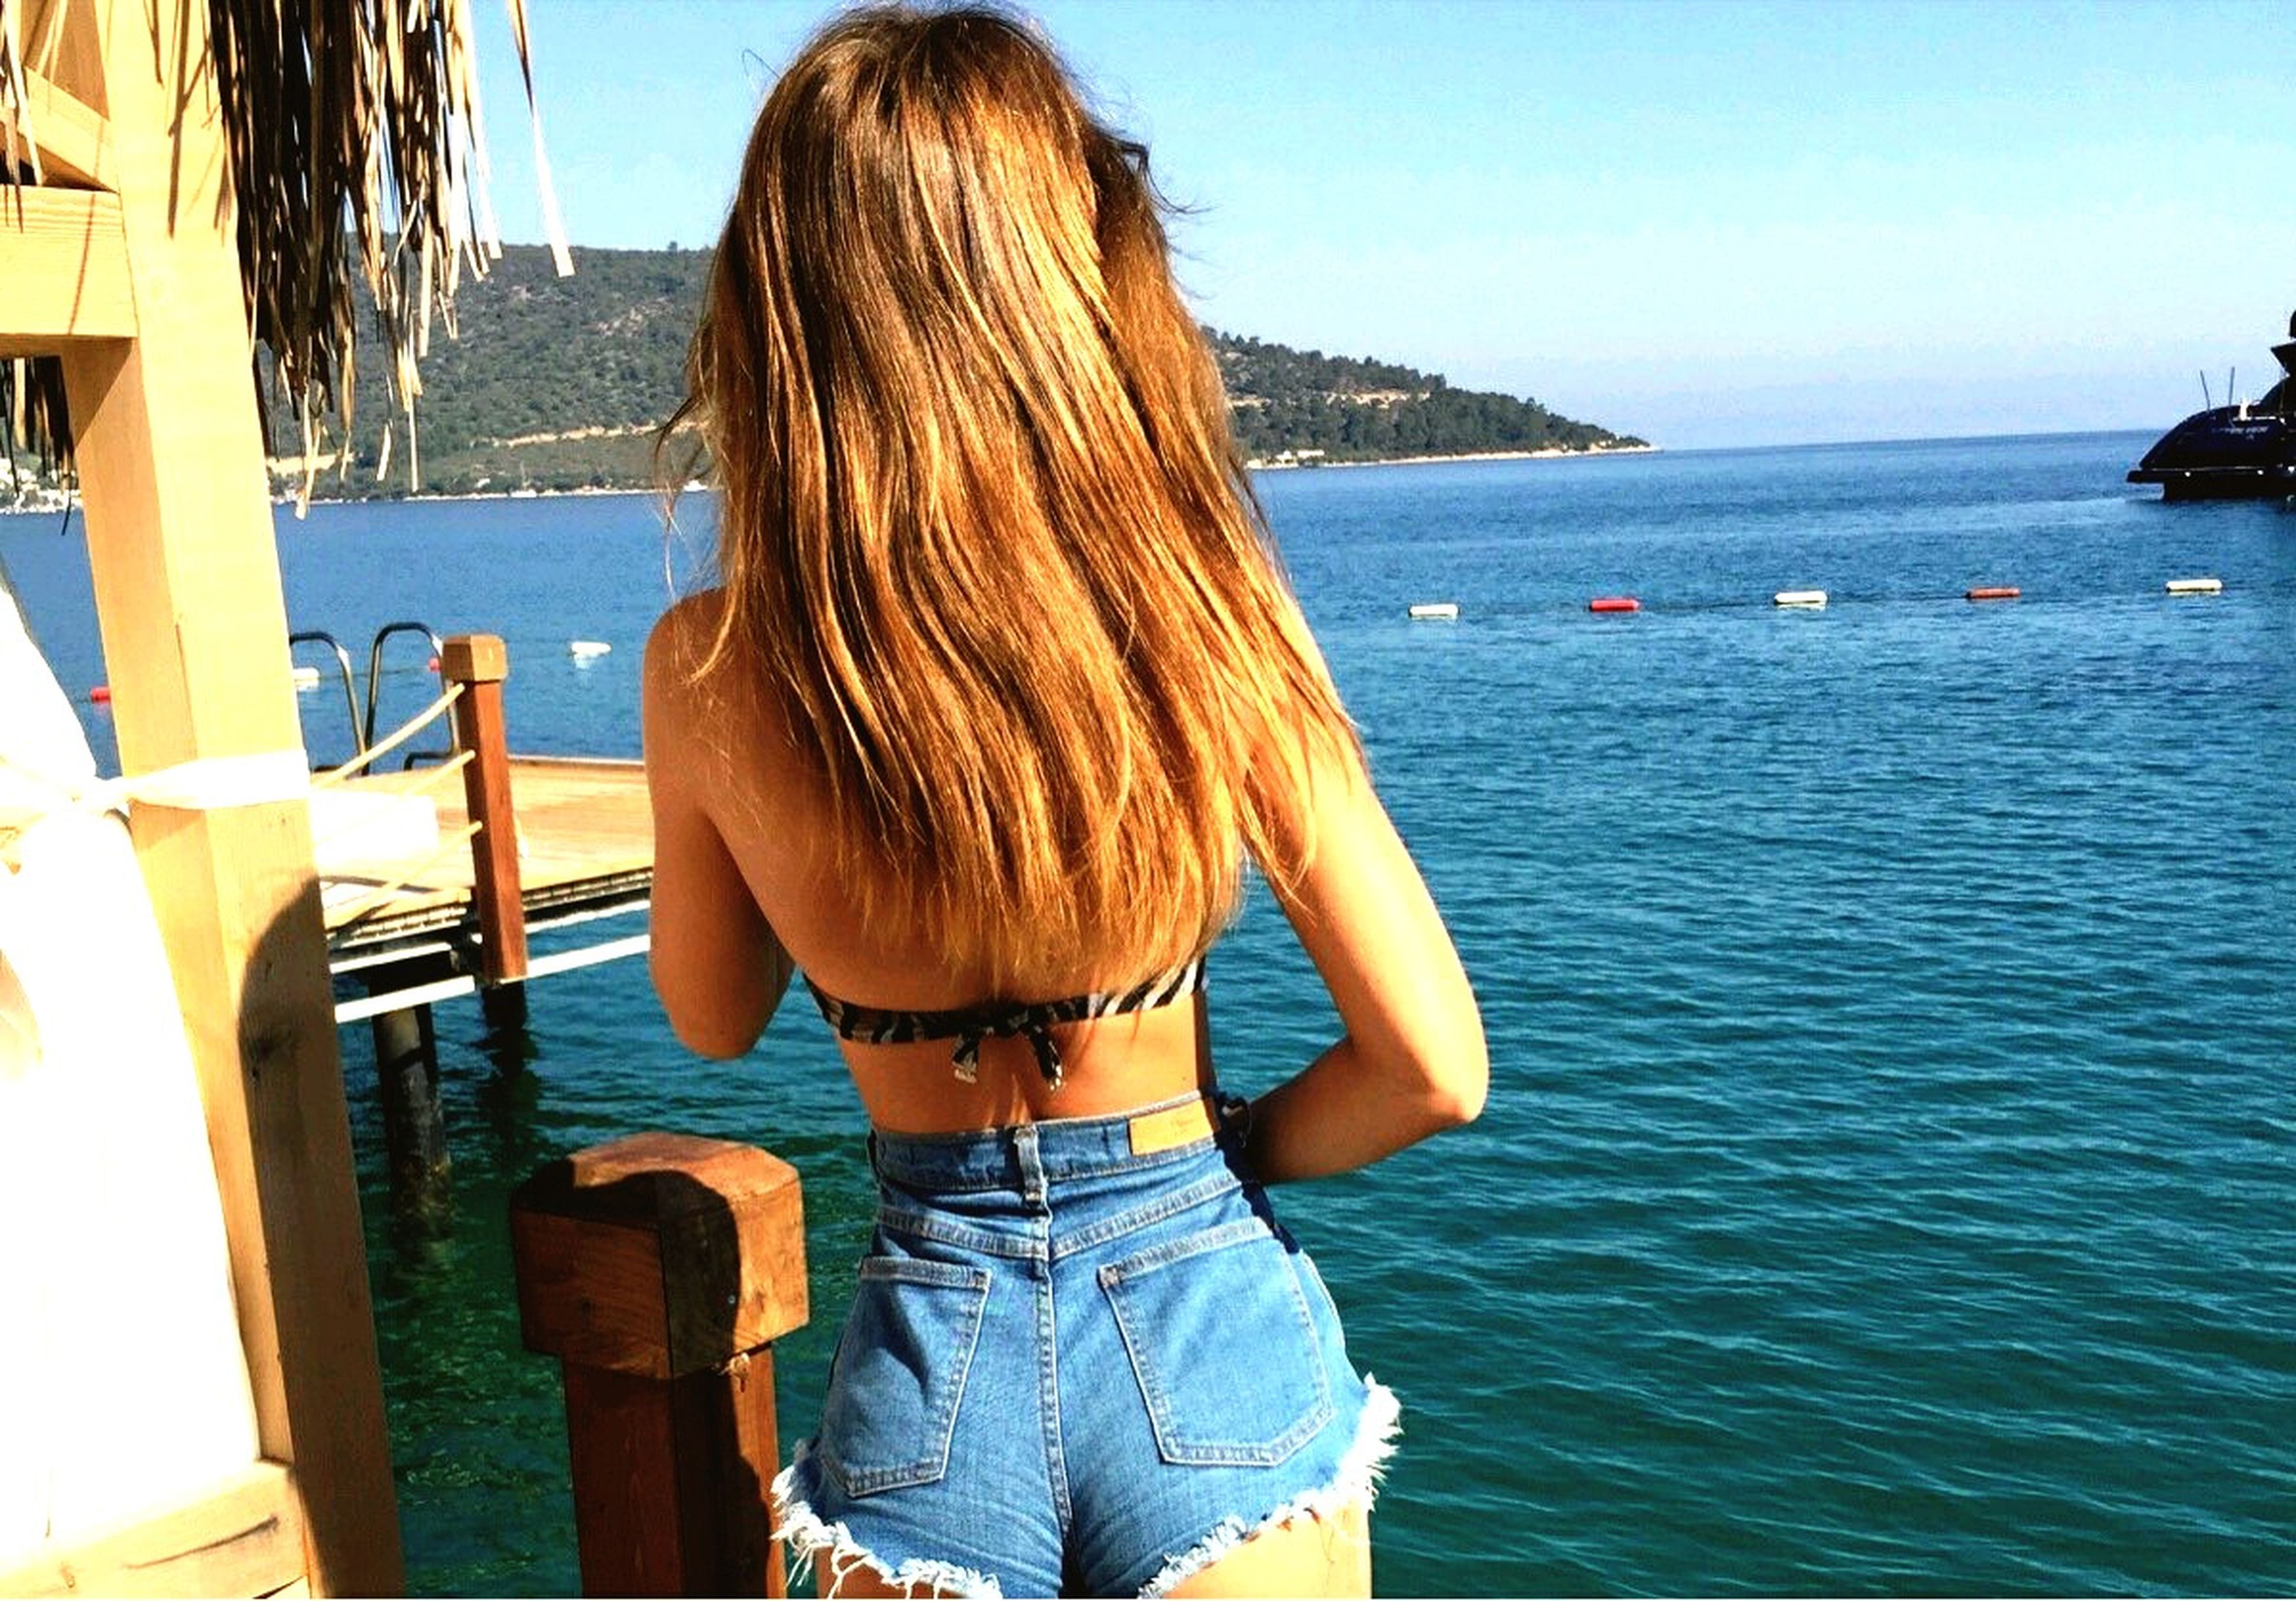 sea, water, horizon over water, rear view, lifestyles, leisure activity, blue, long hair, clear sky, person, sky, standing, railing, beach, nature, tranquility, sunlight, scenics